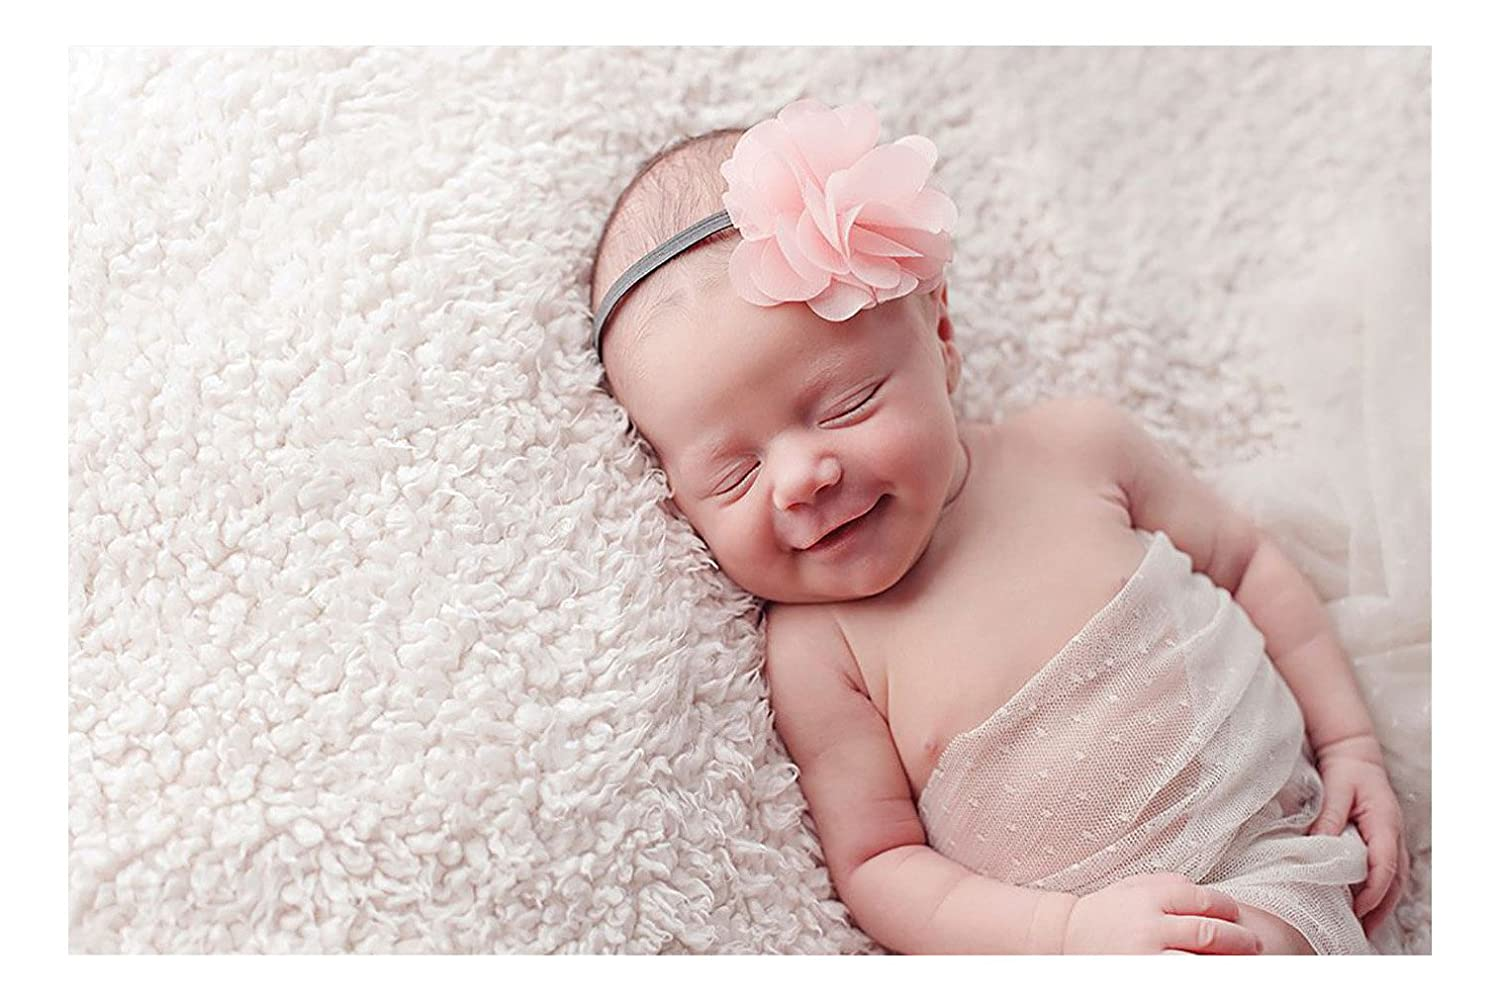 Buy Artstory Vinyl Cute Sleeping Baby Smiling Wall Sticker 40 Cm X 26 Cm X 1 Cm Aws2431 Online At Low Prices In India Amazon In